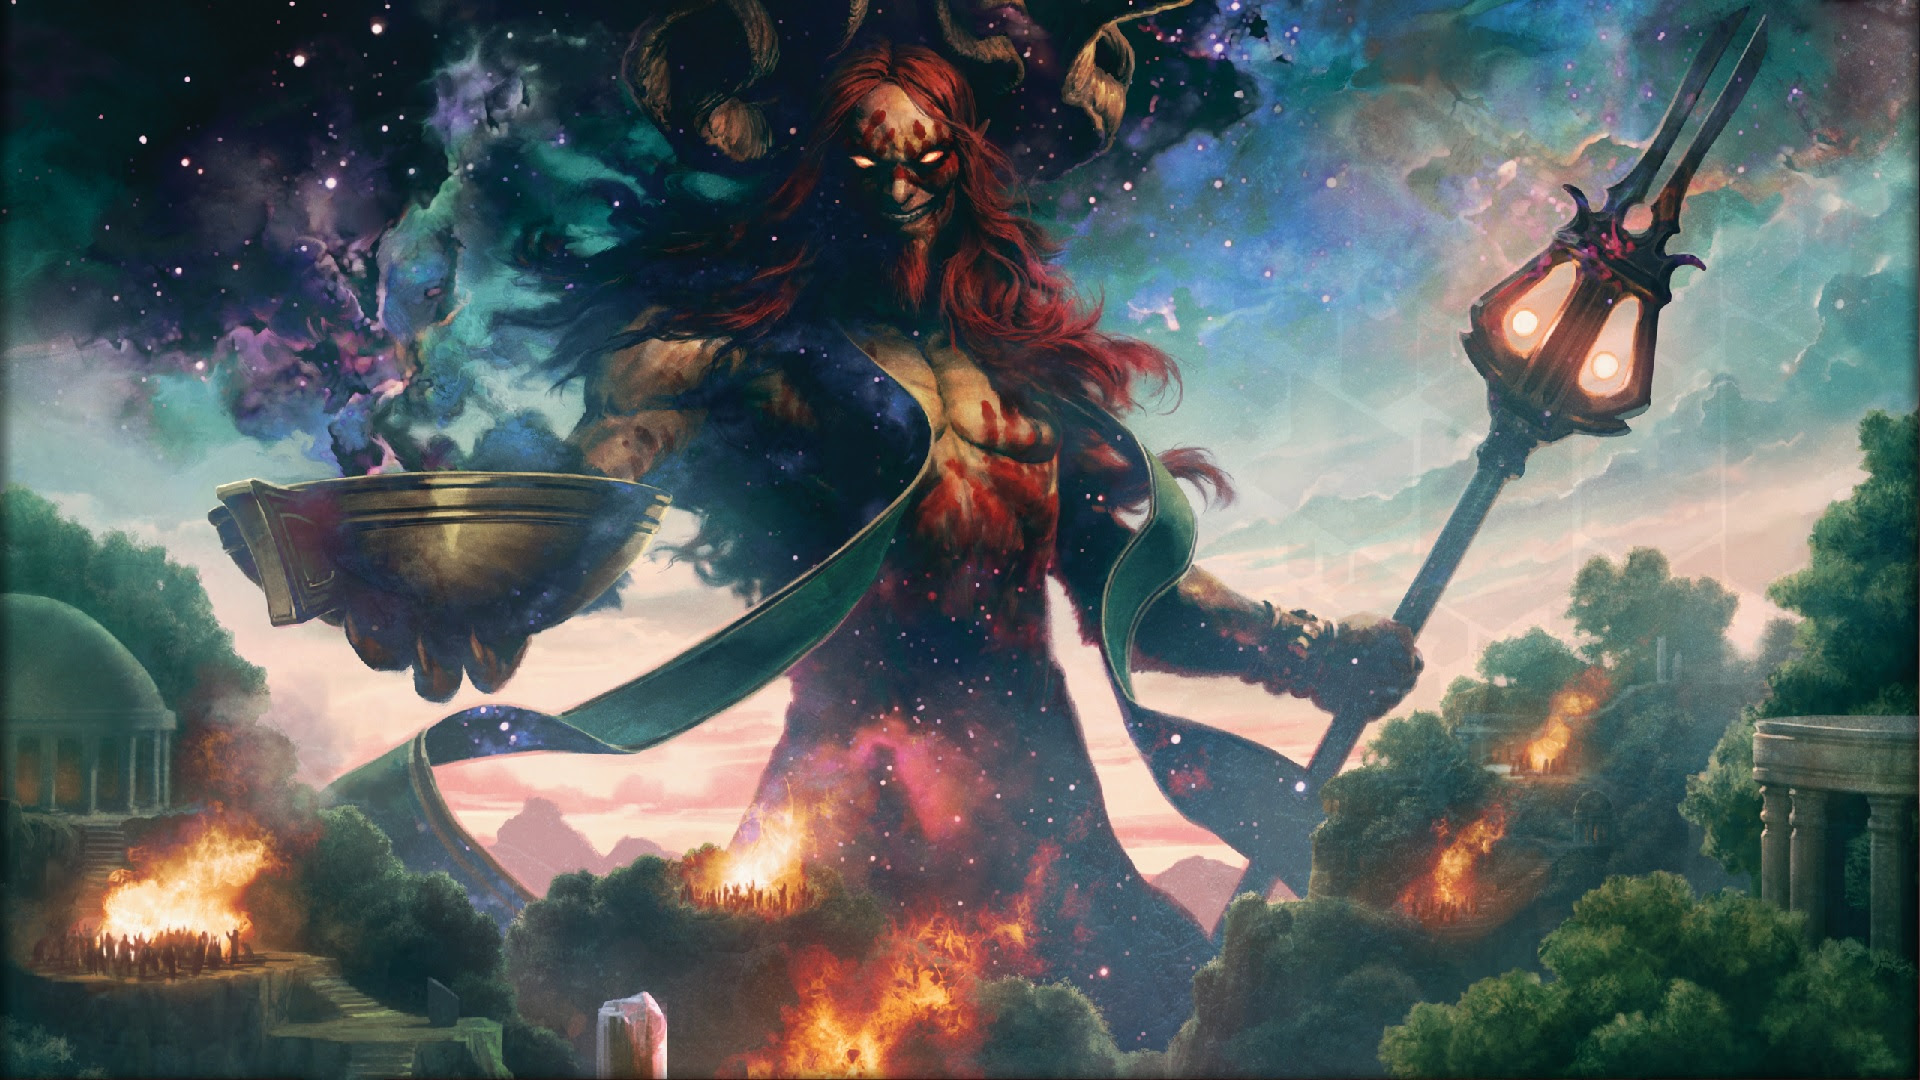 Magic: The Gathering Wallpapers, Pictures, Images